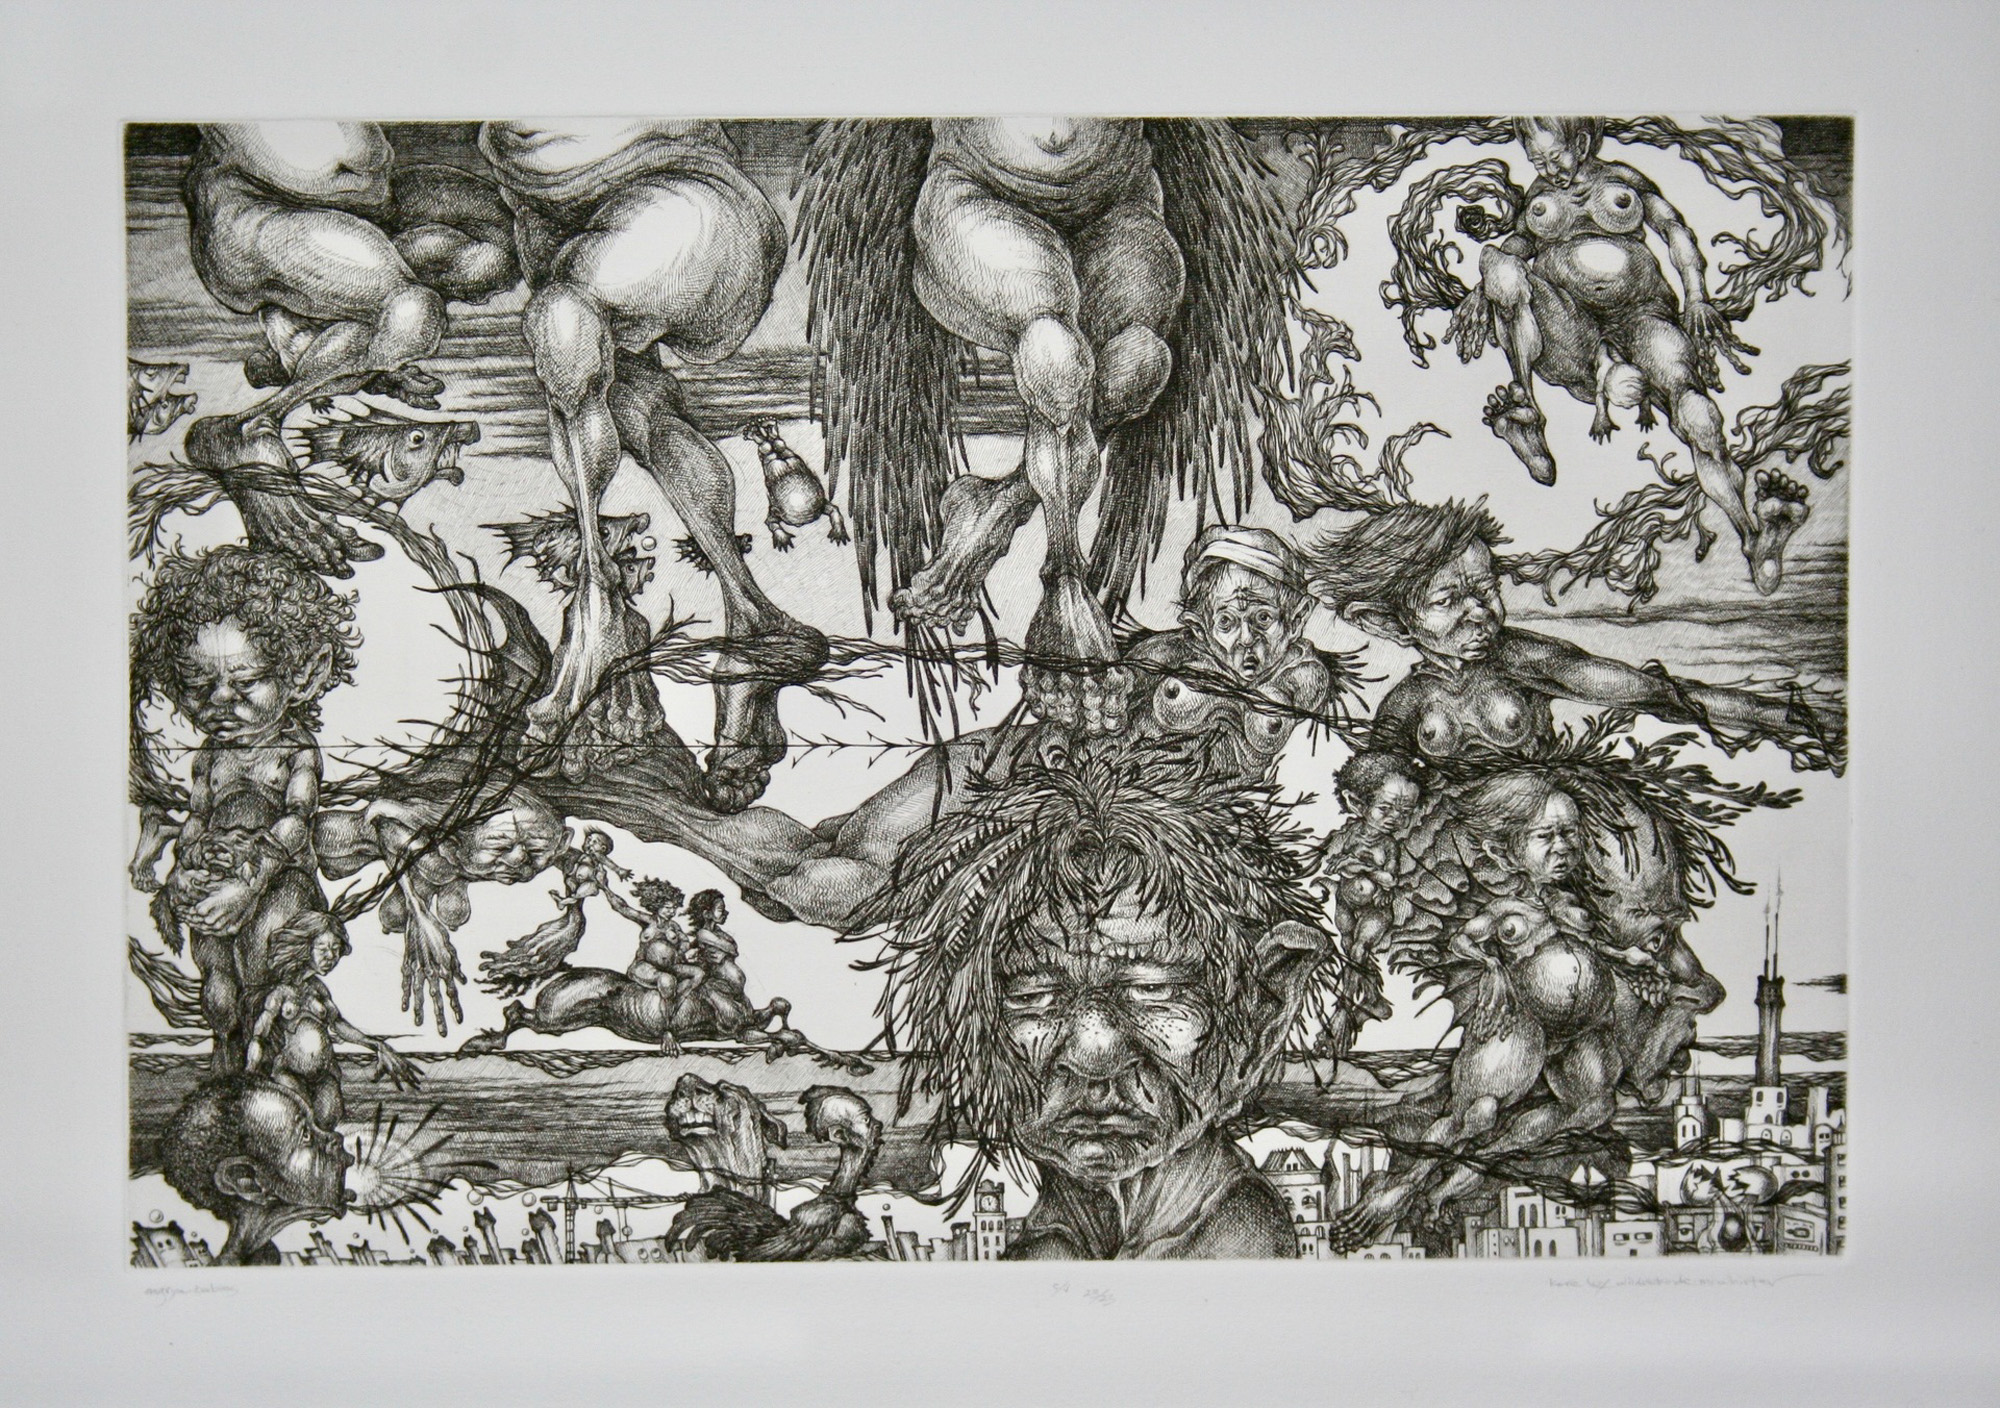 Kore Loy Wildrekinde-Mcwhirter   Angrye Babies Line  etching 22 x 30 inches, APS 264G